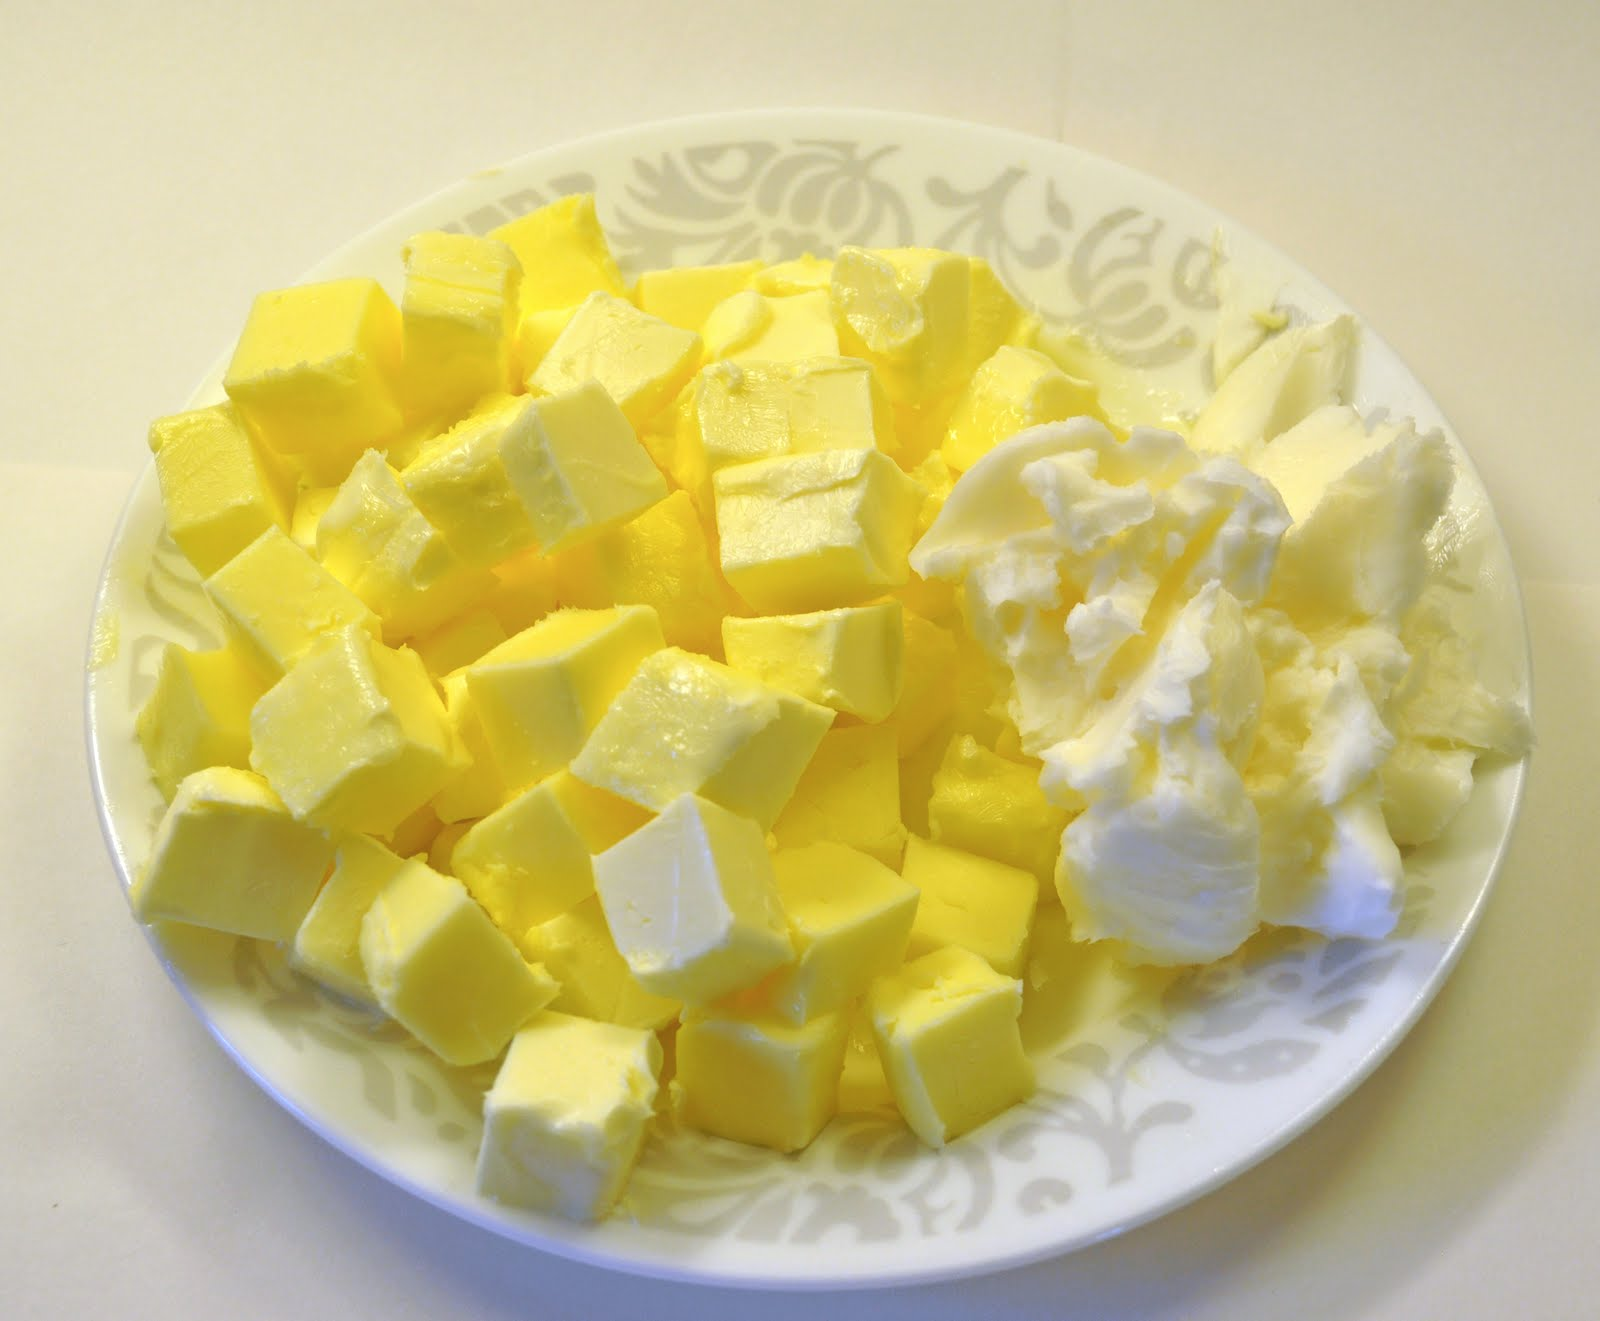 how to cut 80g of butter